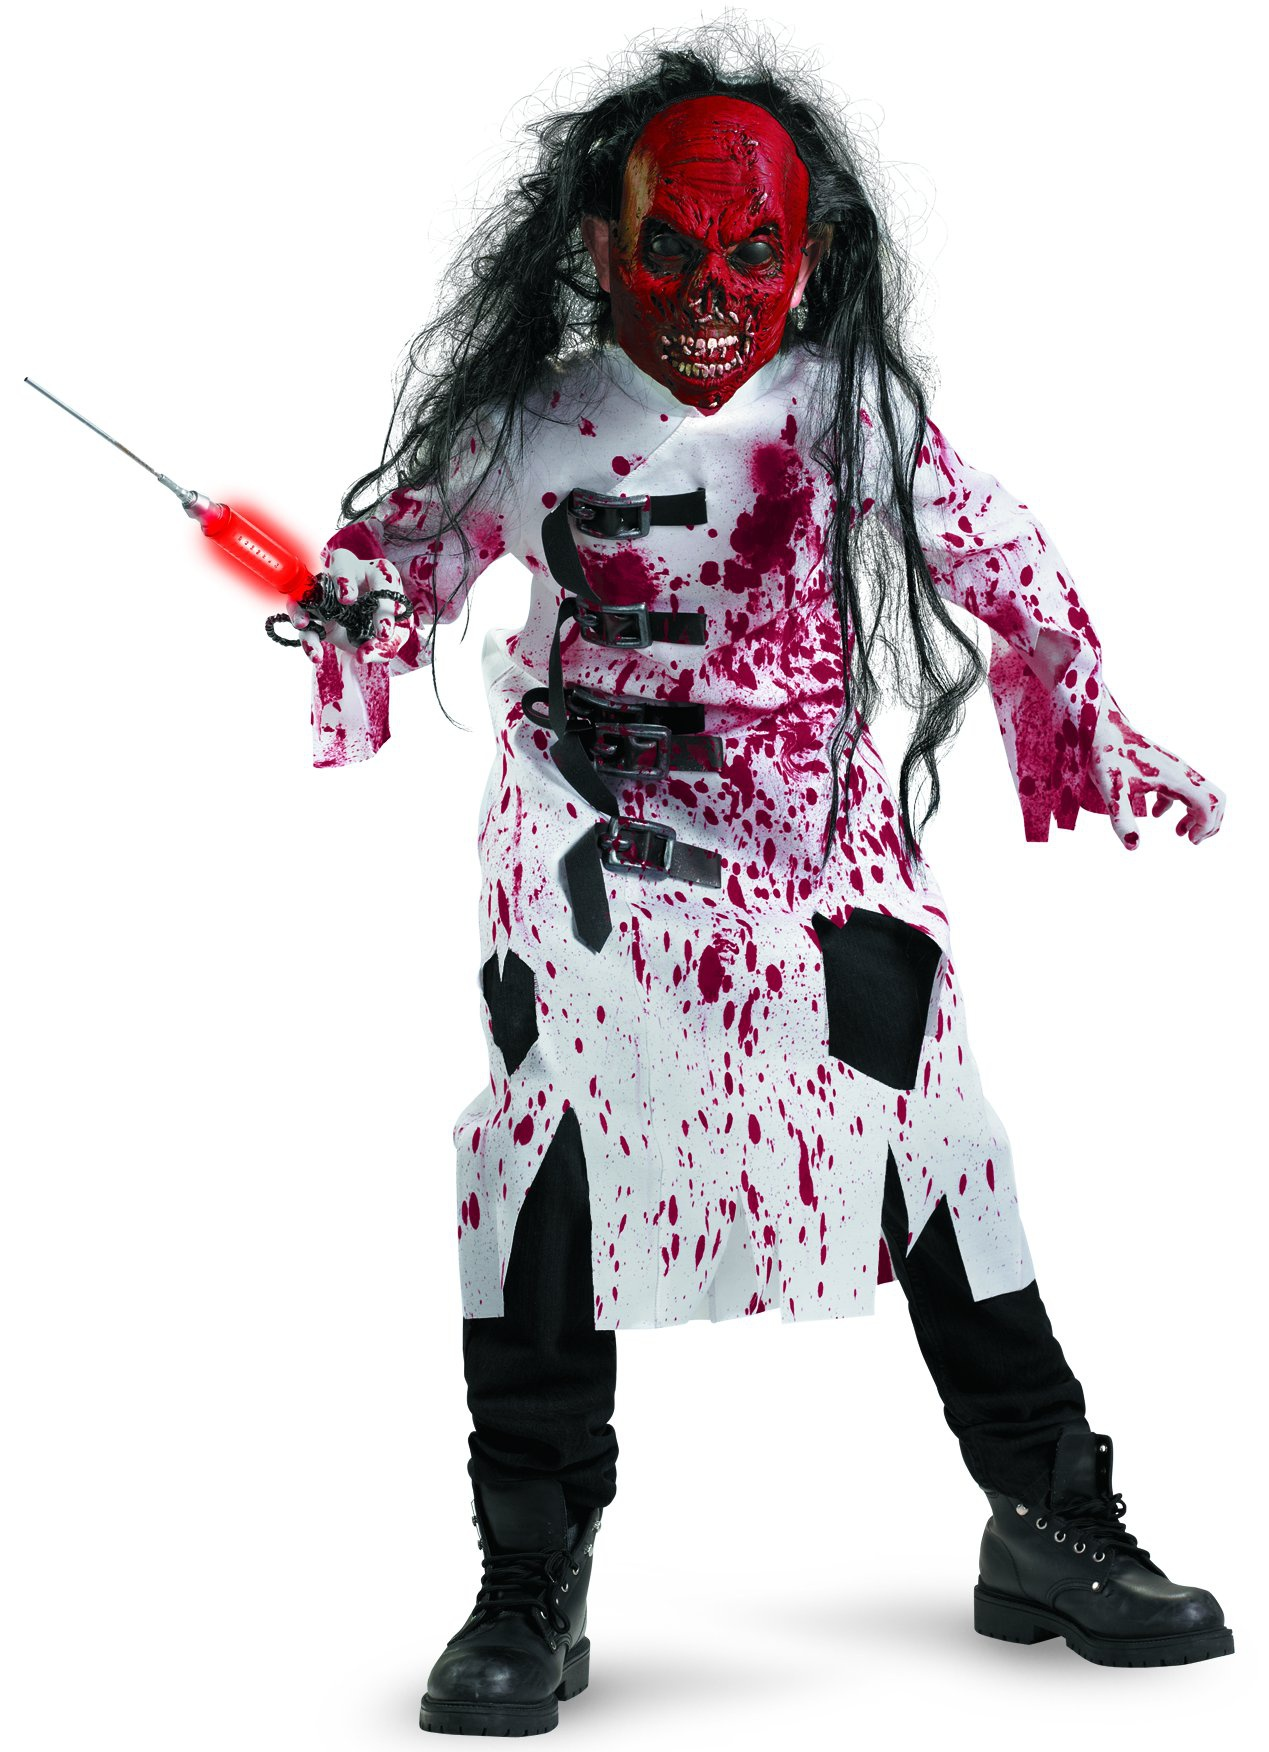 Demented doctor scary kids costume kids scary costumes item 11933 our